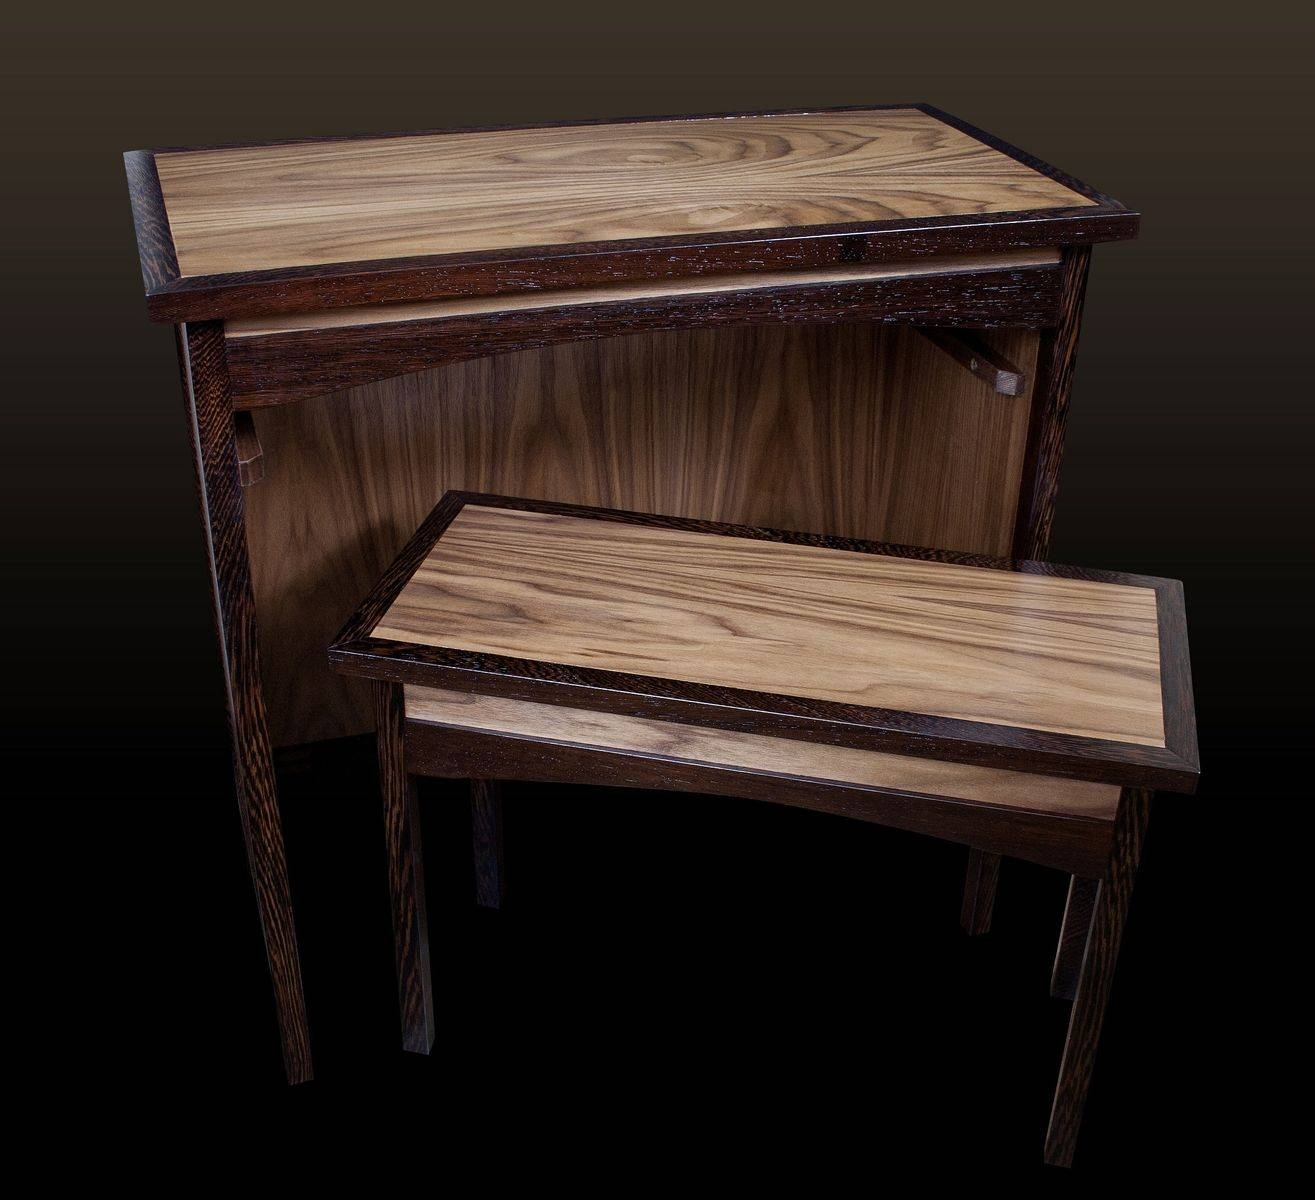 Custom Wenge & Walnut Shaker Sofa Table & Hideaway Bench Regarding Shaker Sofas (View 9 of 15)